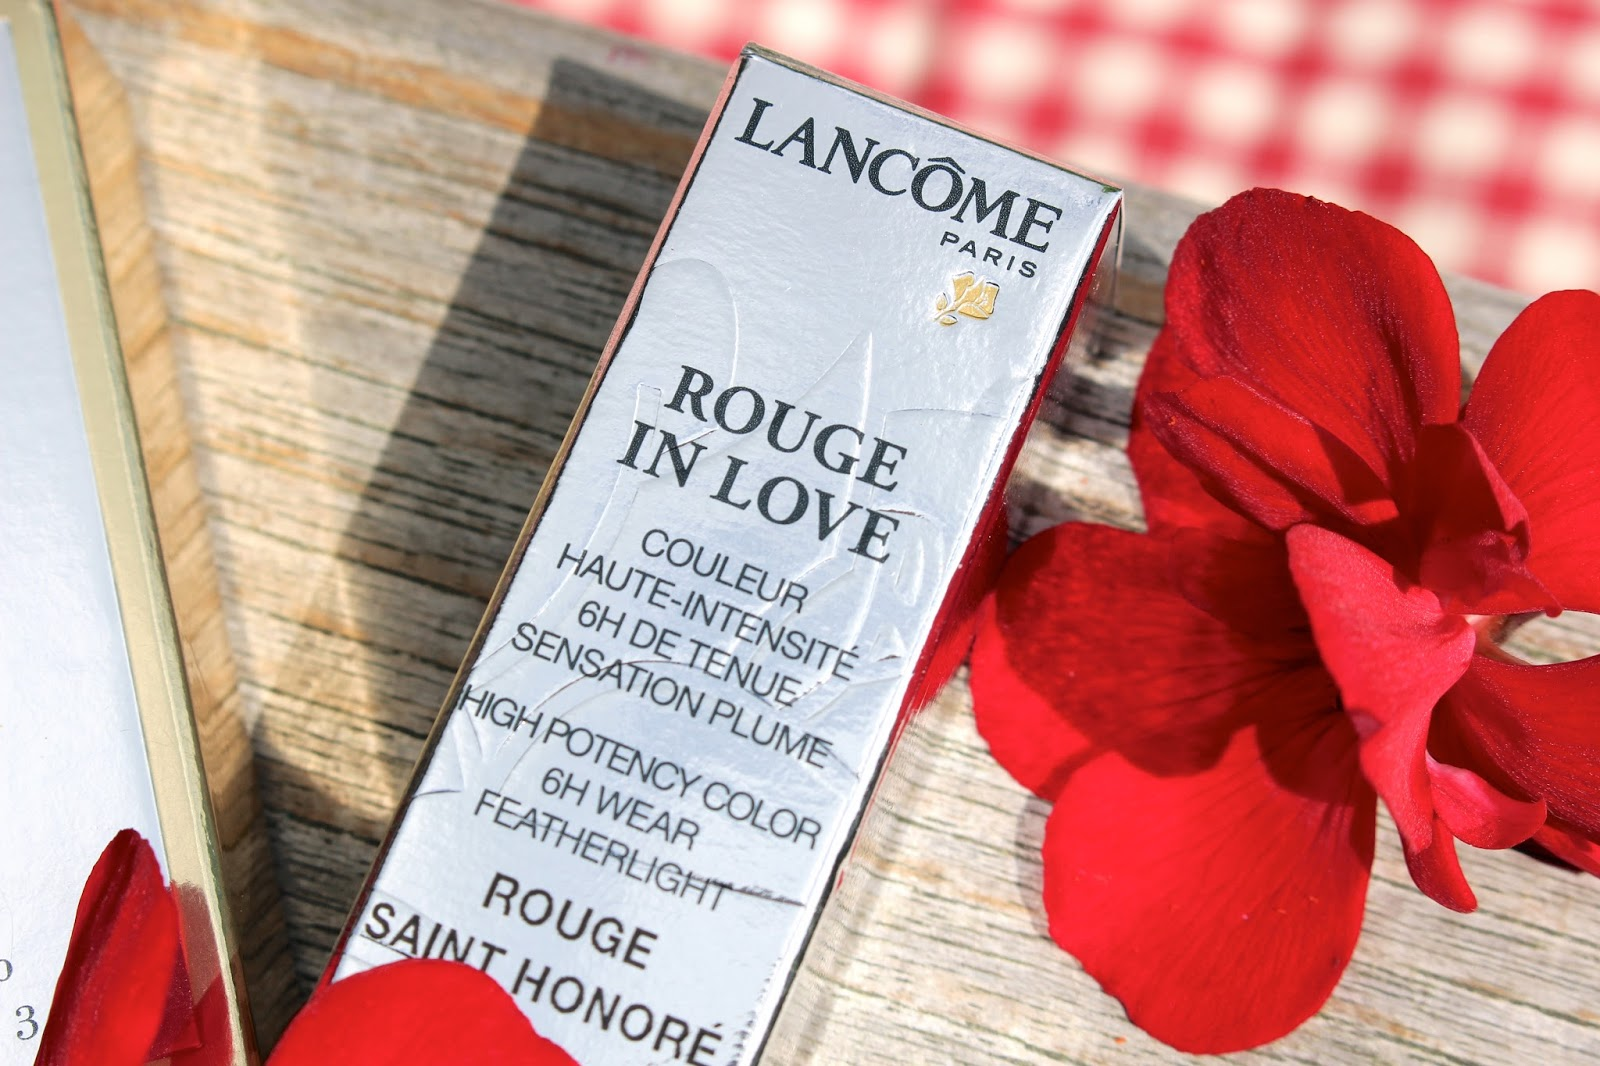 Lancome rouge saint honore lipstick giveaway